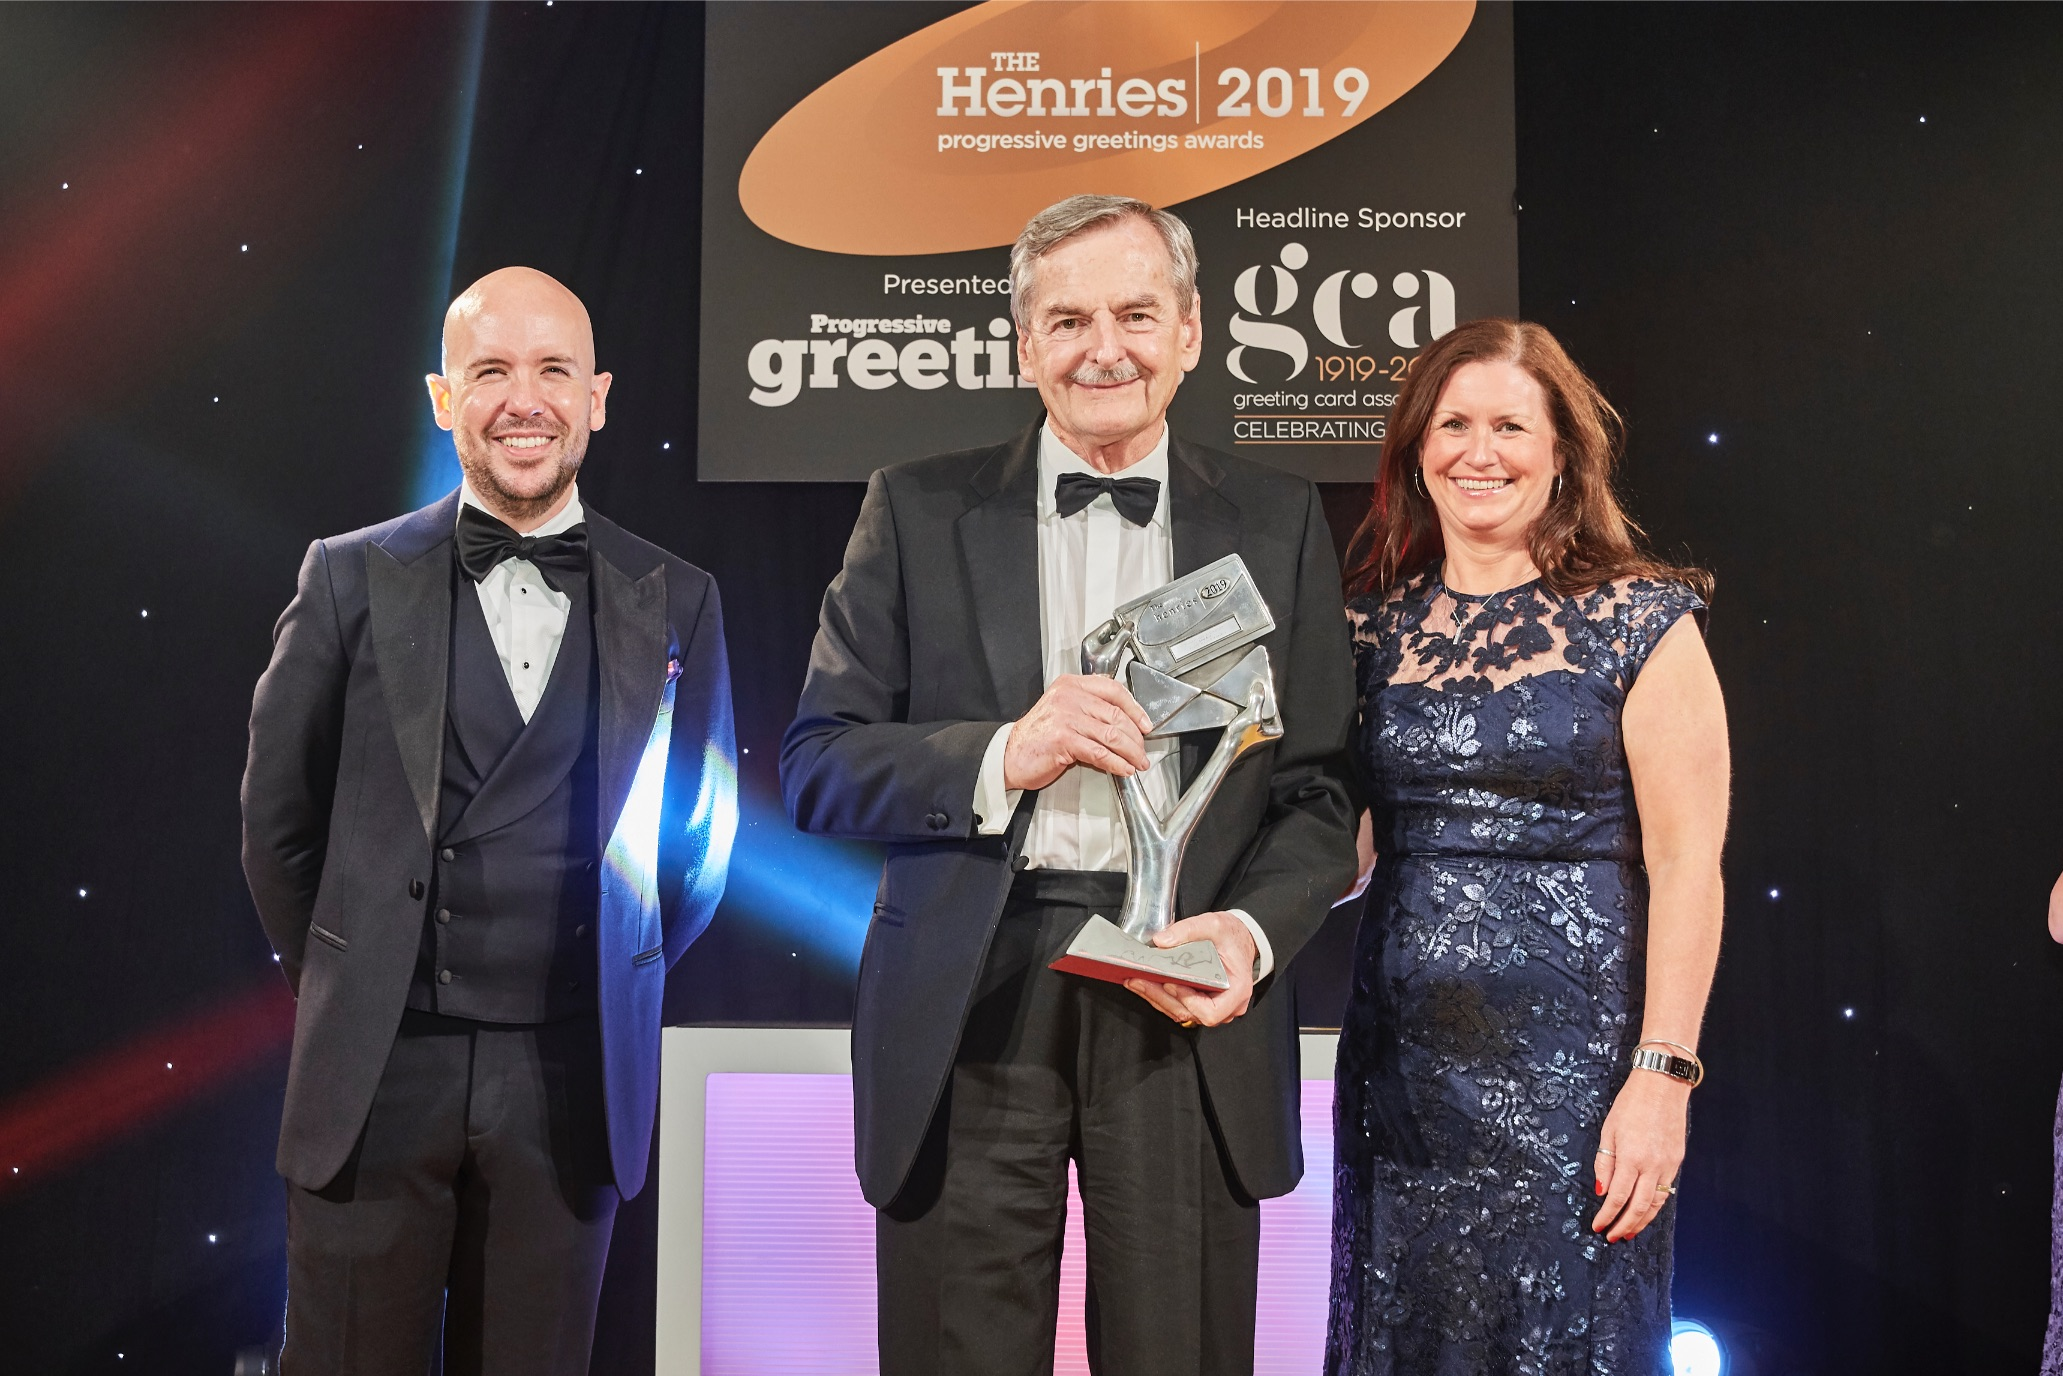 Above: Last year, in recognition of the GCA's 100th anniversary, instead of the Honorary Achievement Award, Simon Elvin (centre) was presented with a special GCA Outstanding Contribution. Pictured with Joanne Davis of UK Envelope Centre, sponsor of the award category and The Henries' host Tom Allen.